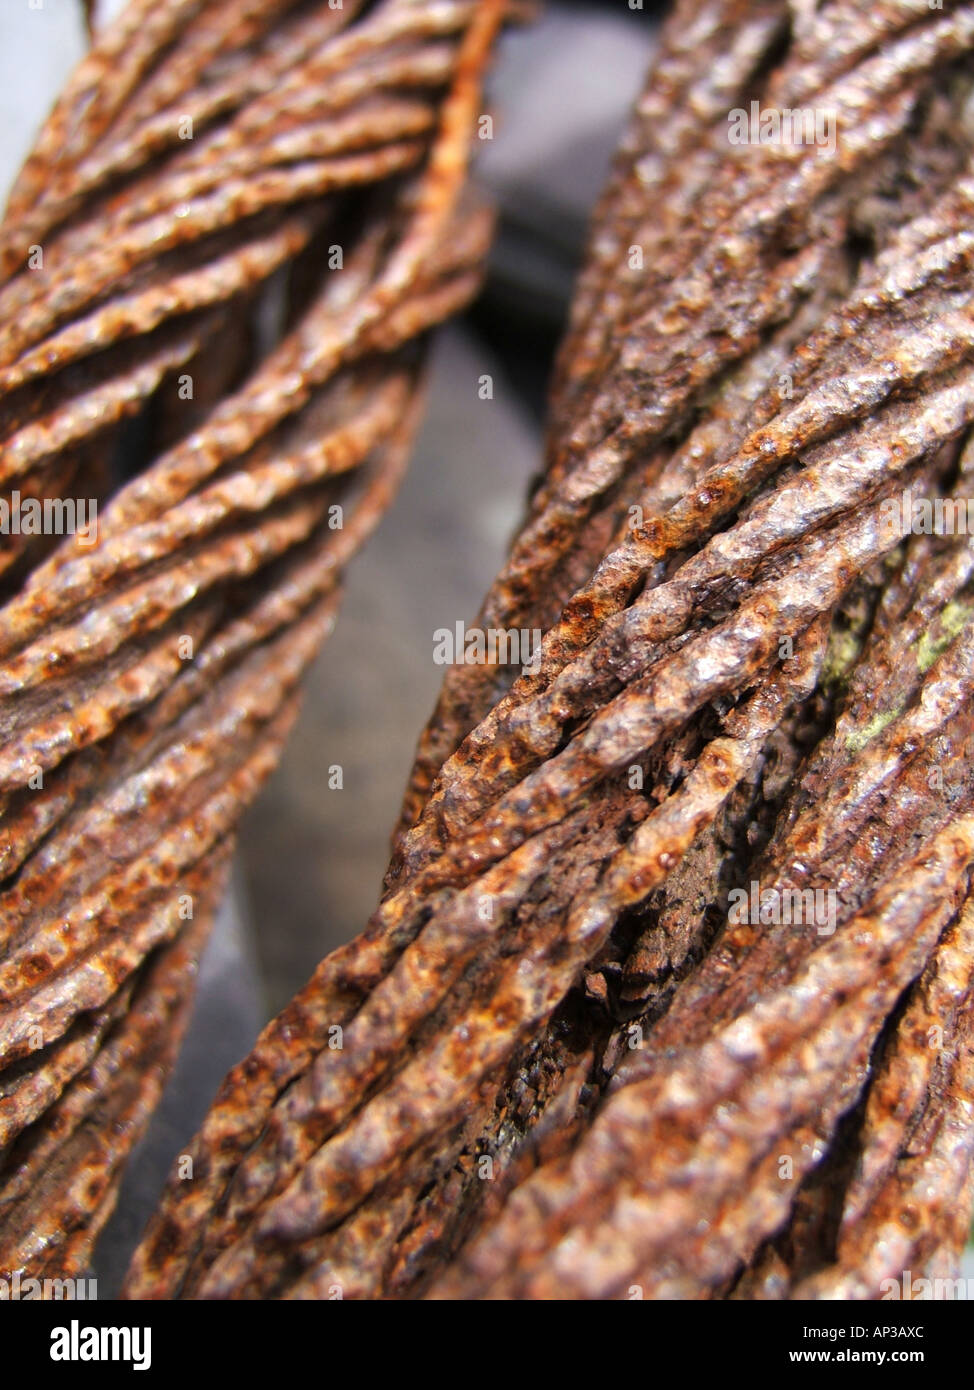 Close Up Corroded Broken Wire Stock Photos & Close Up Corroded ...